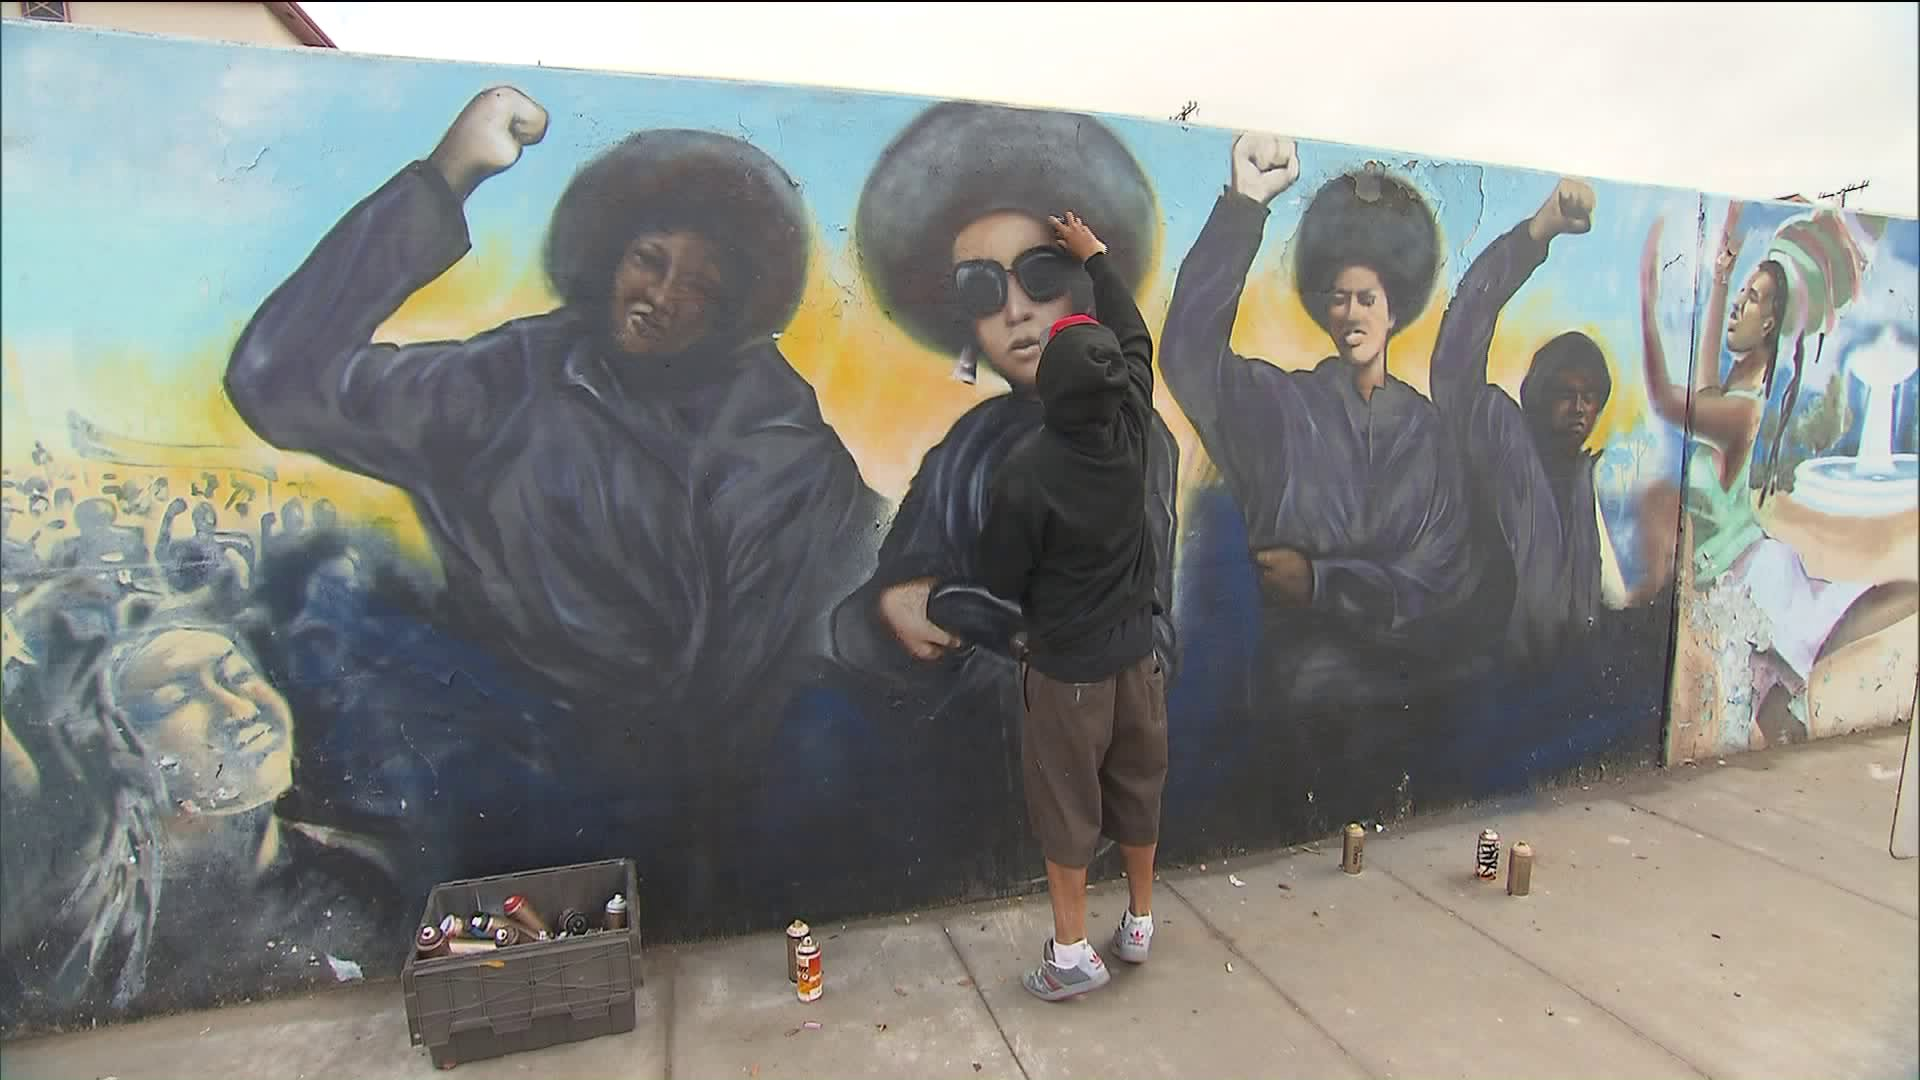 """Artist Enkone works to cover up swastikas painted on the """"Our Mighty Contribution"""" mural at Crenshaw Boulevard and 50th Street in the Hyde Park neighborhood of Los Angeles on Nov. 29, 2018. (Credit: CNN)"""